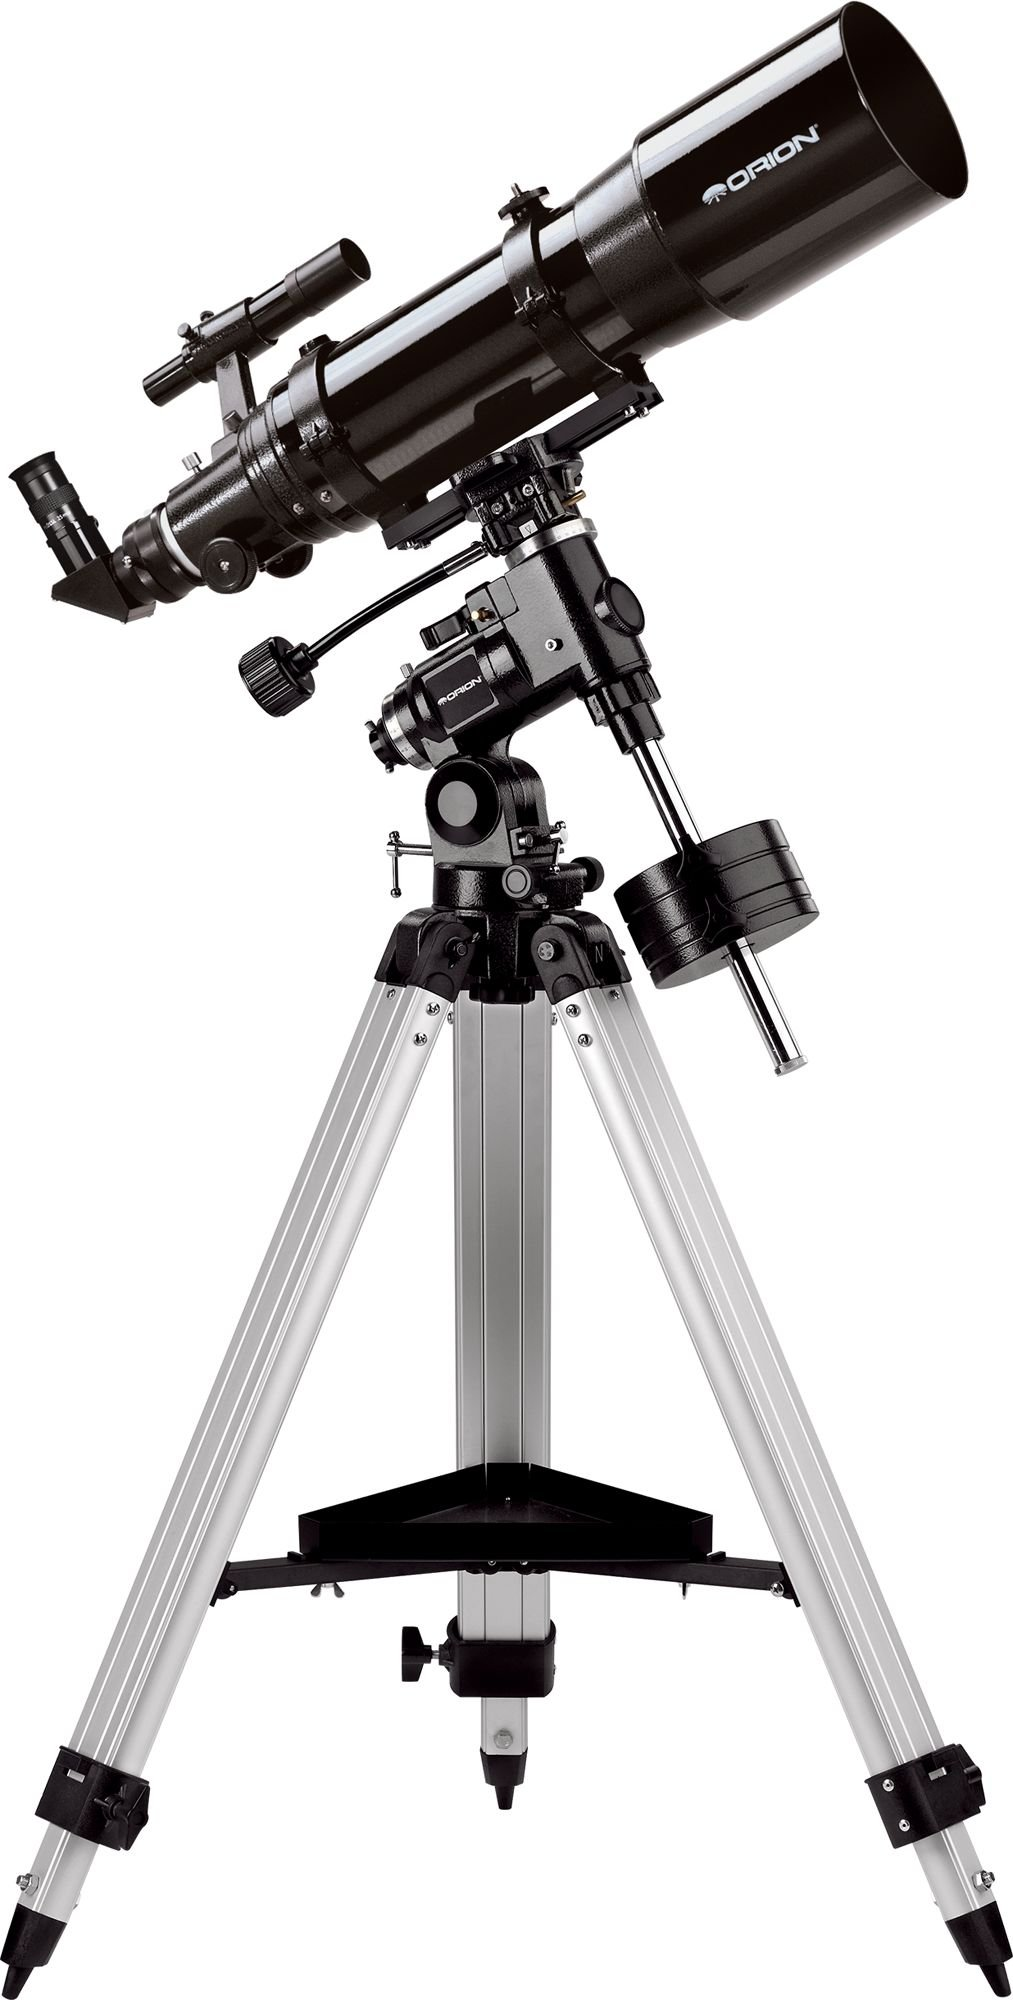 Orion 9005 AstroView 120ST Equatorial Refractor Telescope by Orion